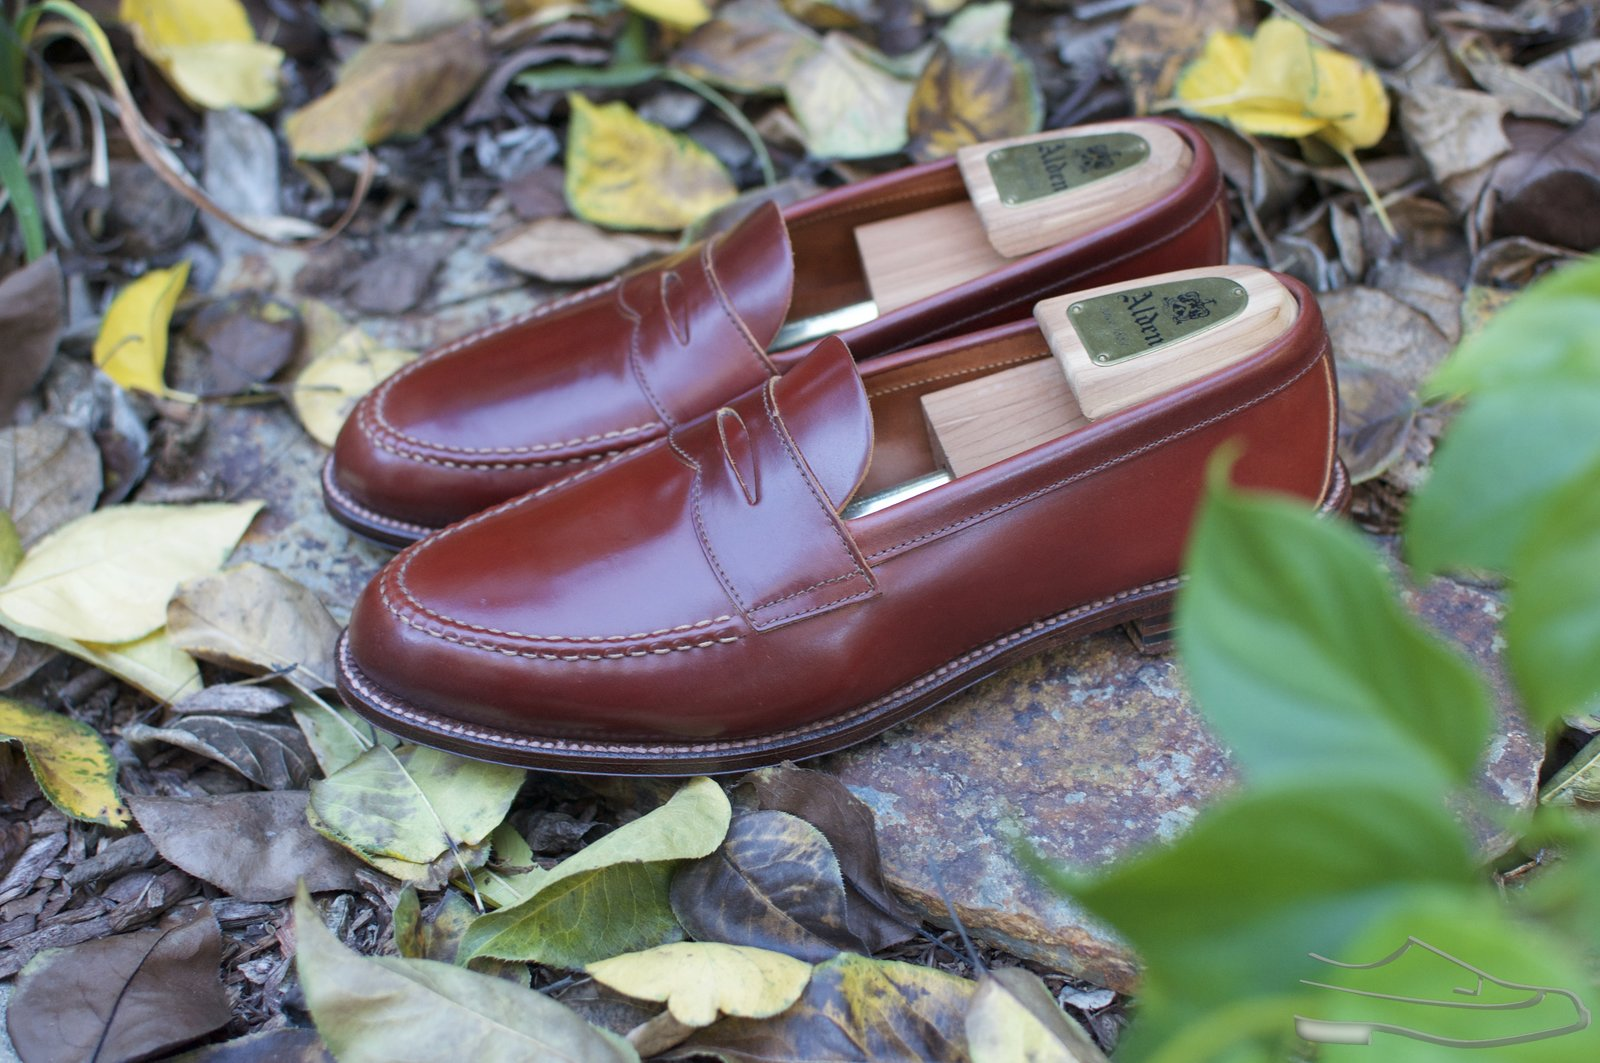 Alden Color #2 Unlined Shell Cordovan LHS - 2020-11-29 - 3.jpg